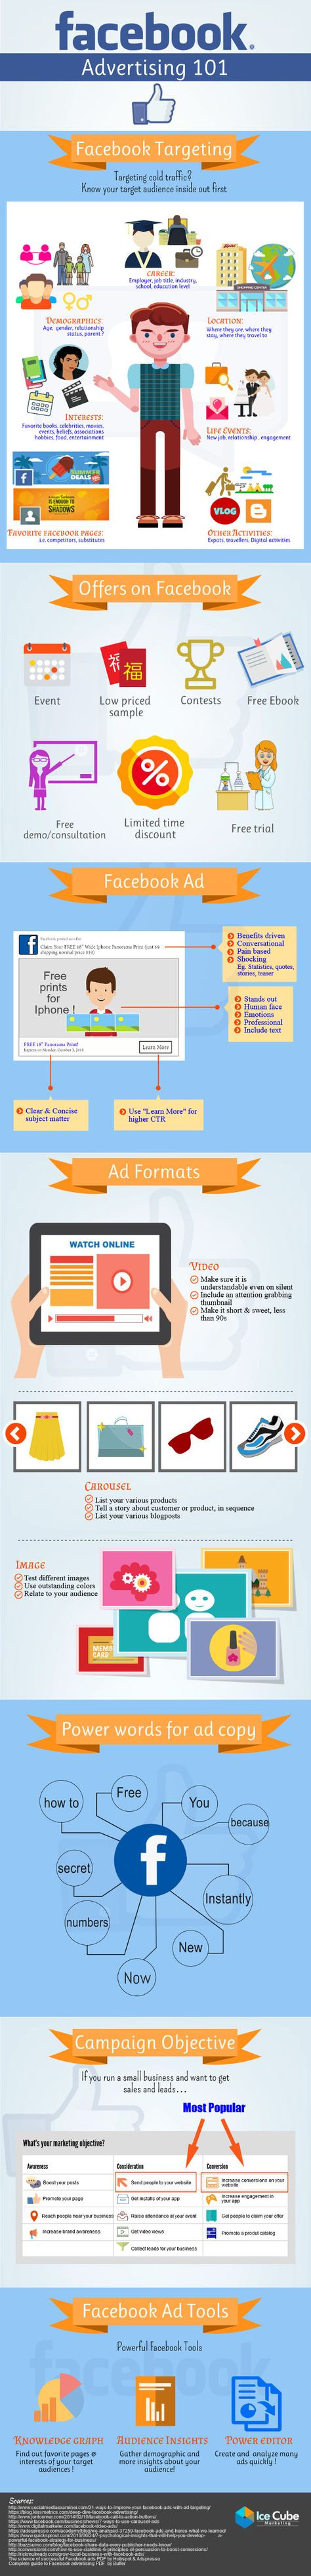 Facebook Advertising 101 [Infographic]